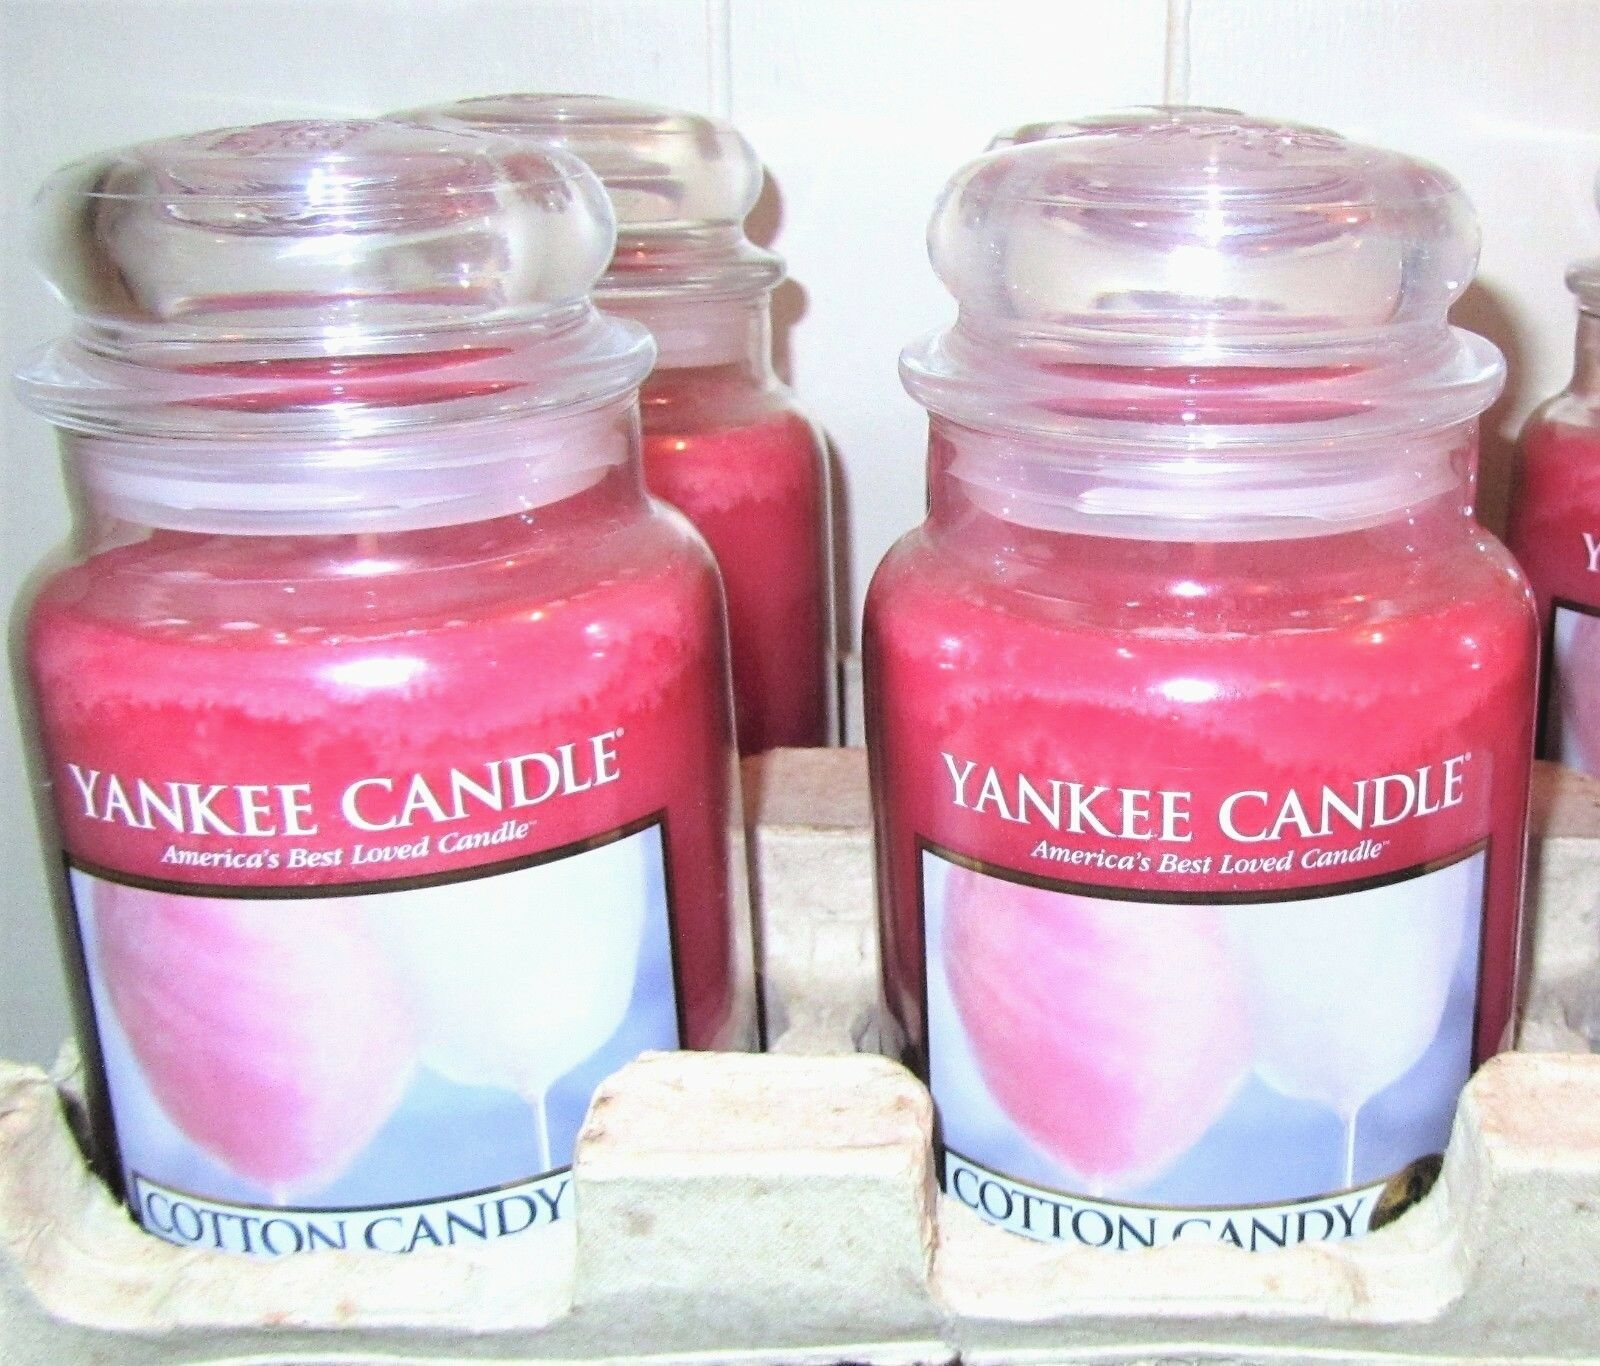 LOT OF 4 Yankee Candle  COTTON CANDY   Large 22 oz.  TAN LABEL NEW